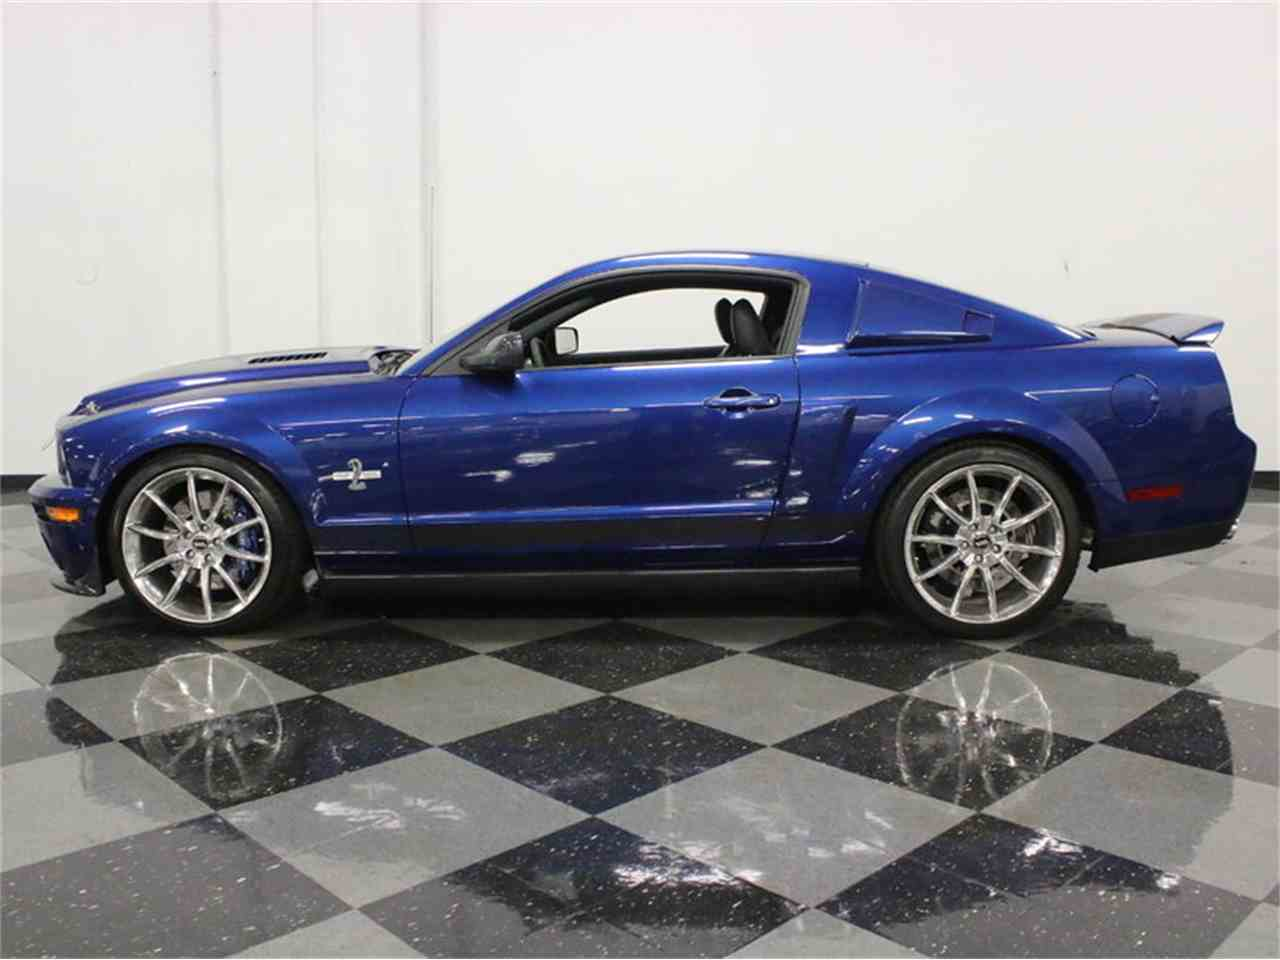 2008 Ford Mustang Shelby GT500 Super Snake for Sale  ClassicCars